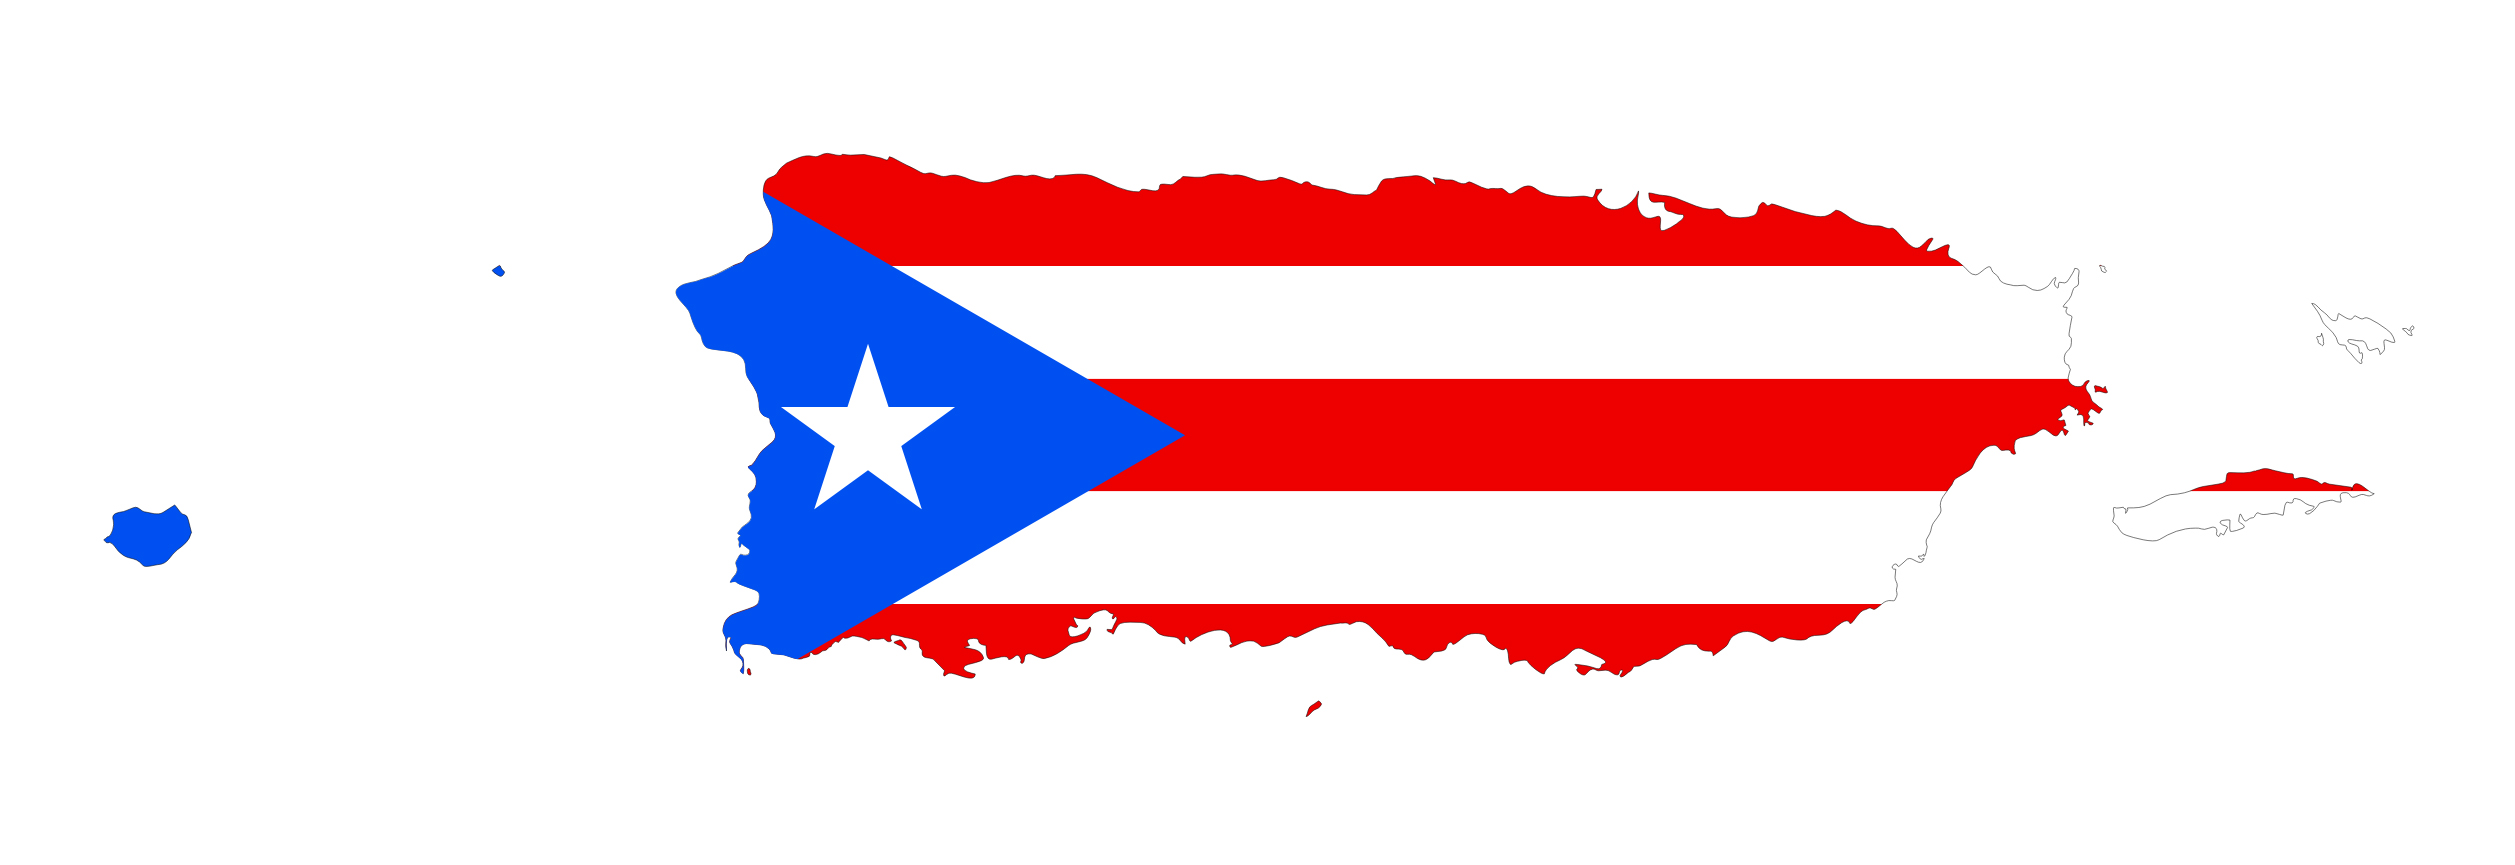 Large flag map of Puerto Rico | Puerto Rico | North America ...